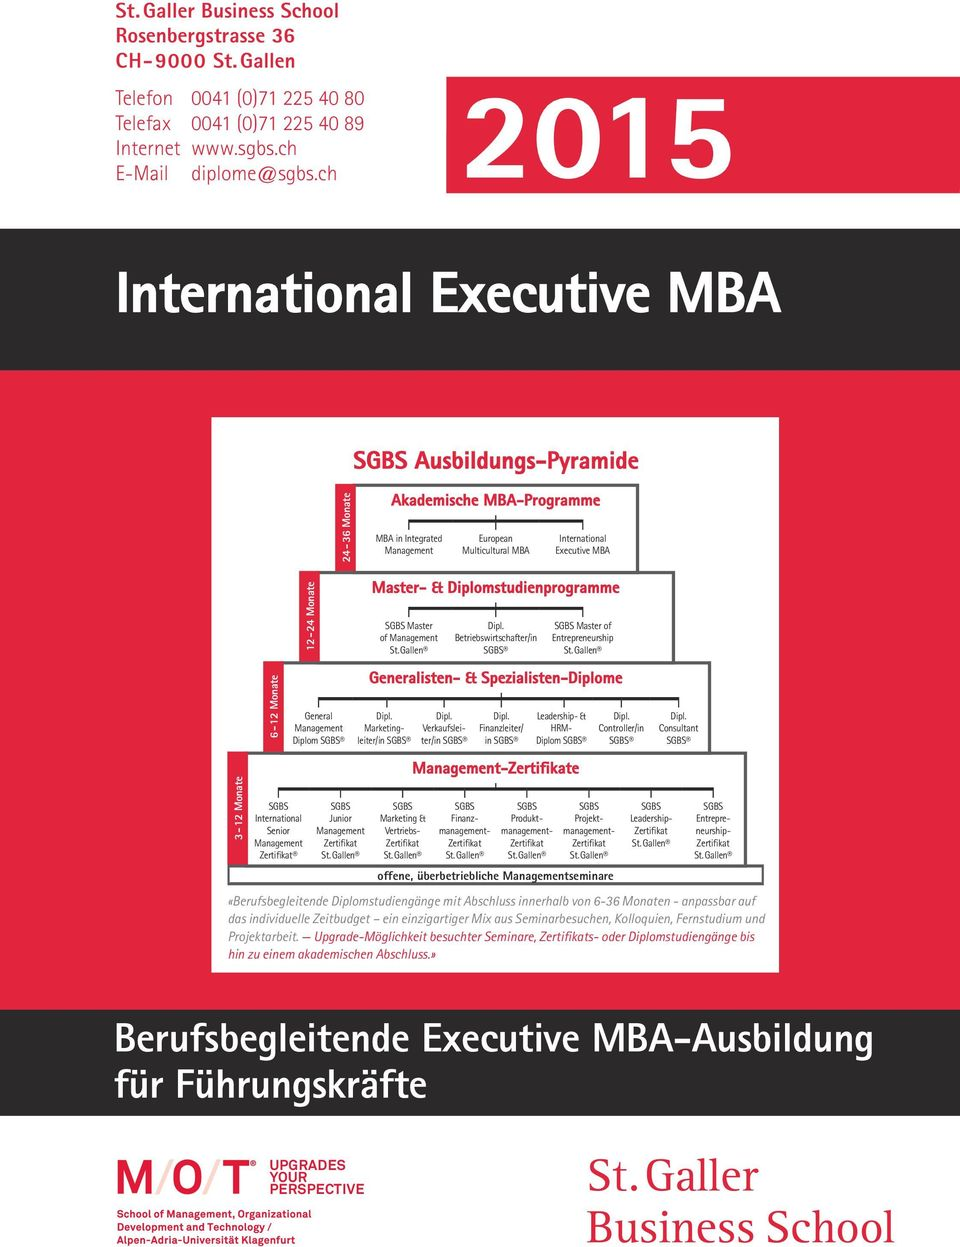 Monate International Senior Management 12-24 Monate General Management Diplom Junior Management Master- & Diplomstudienprogramme Master of Management Generalisten- & Spezialisten-Diplome